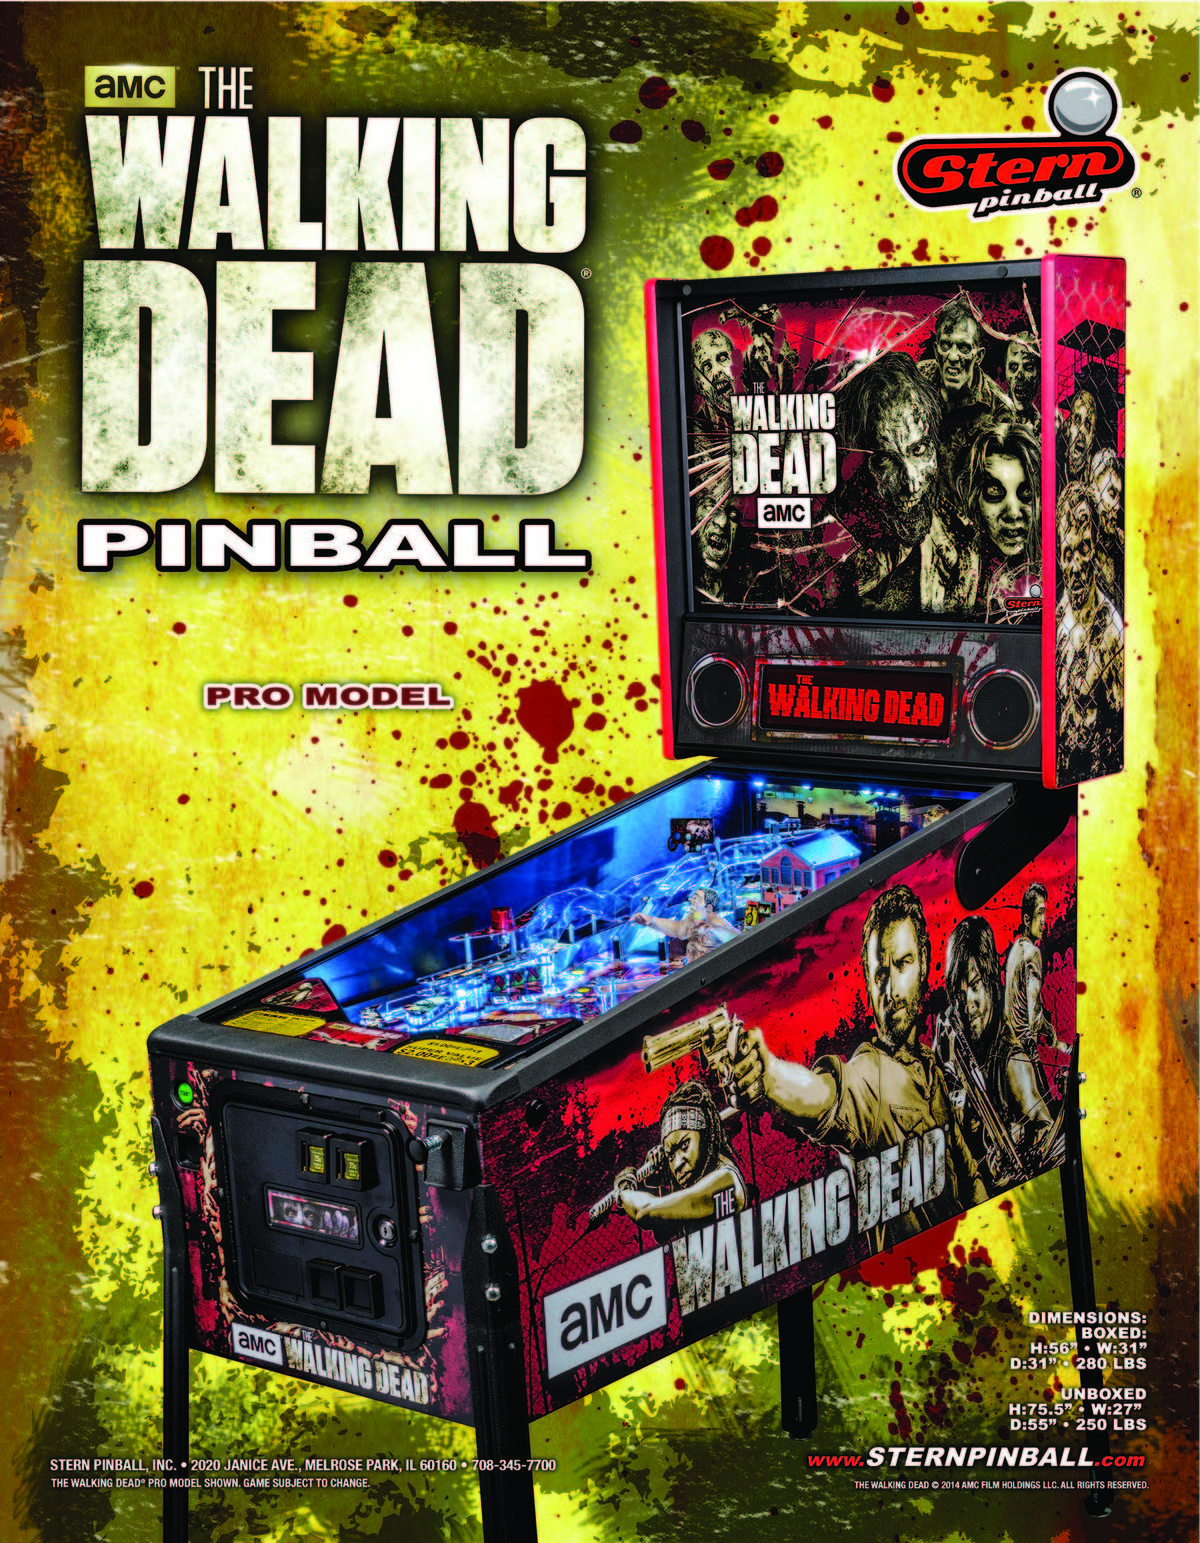 The Walking Dead Soccer pinball at The Waiting Room.